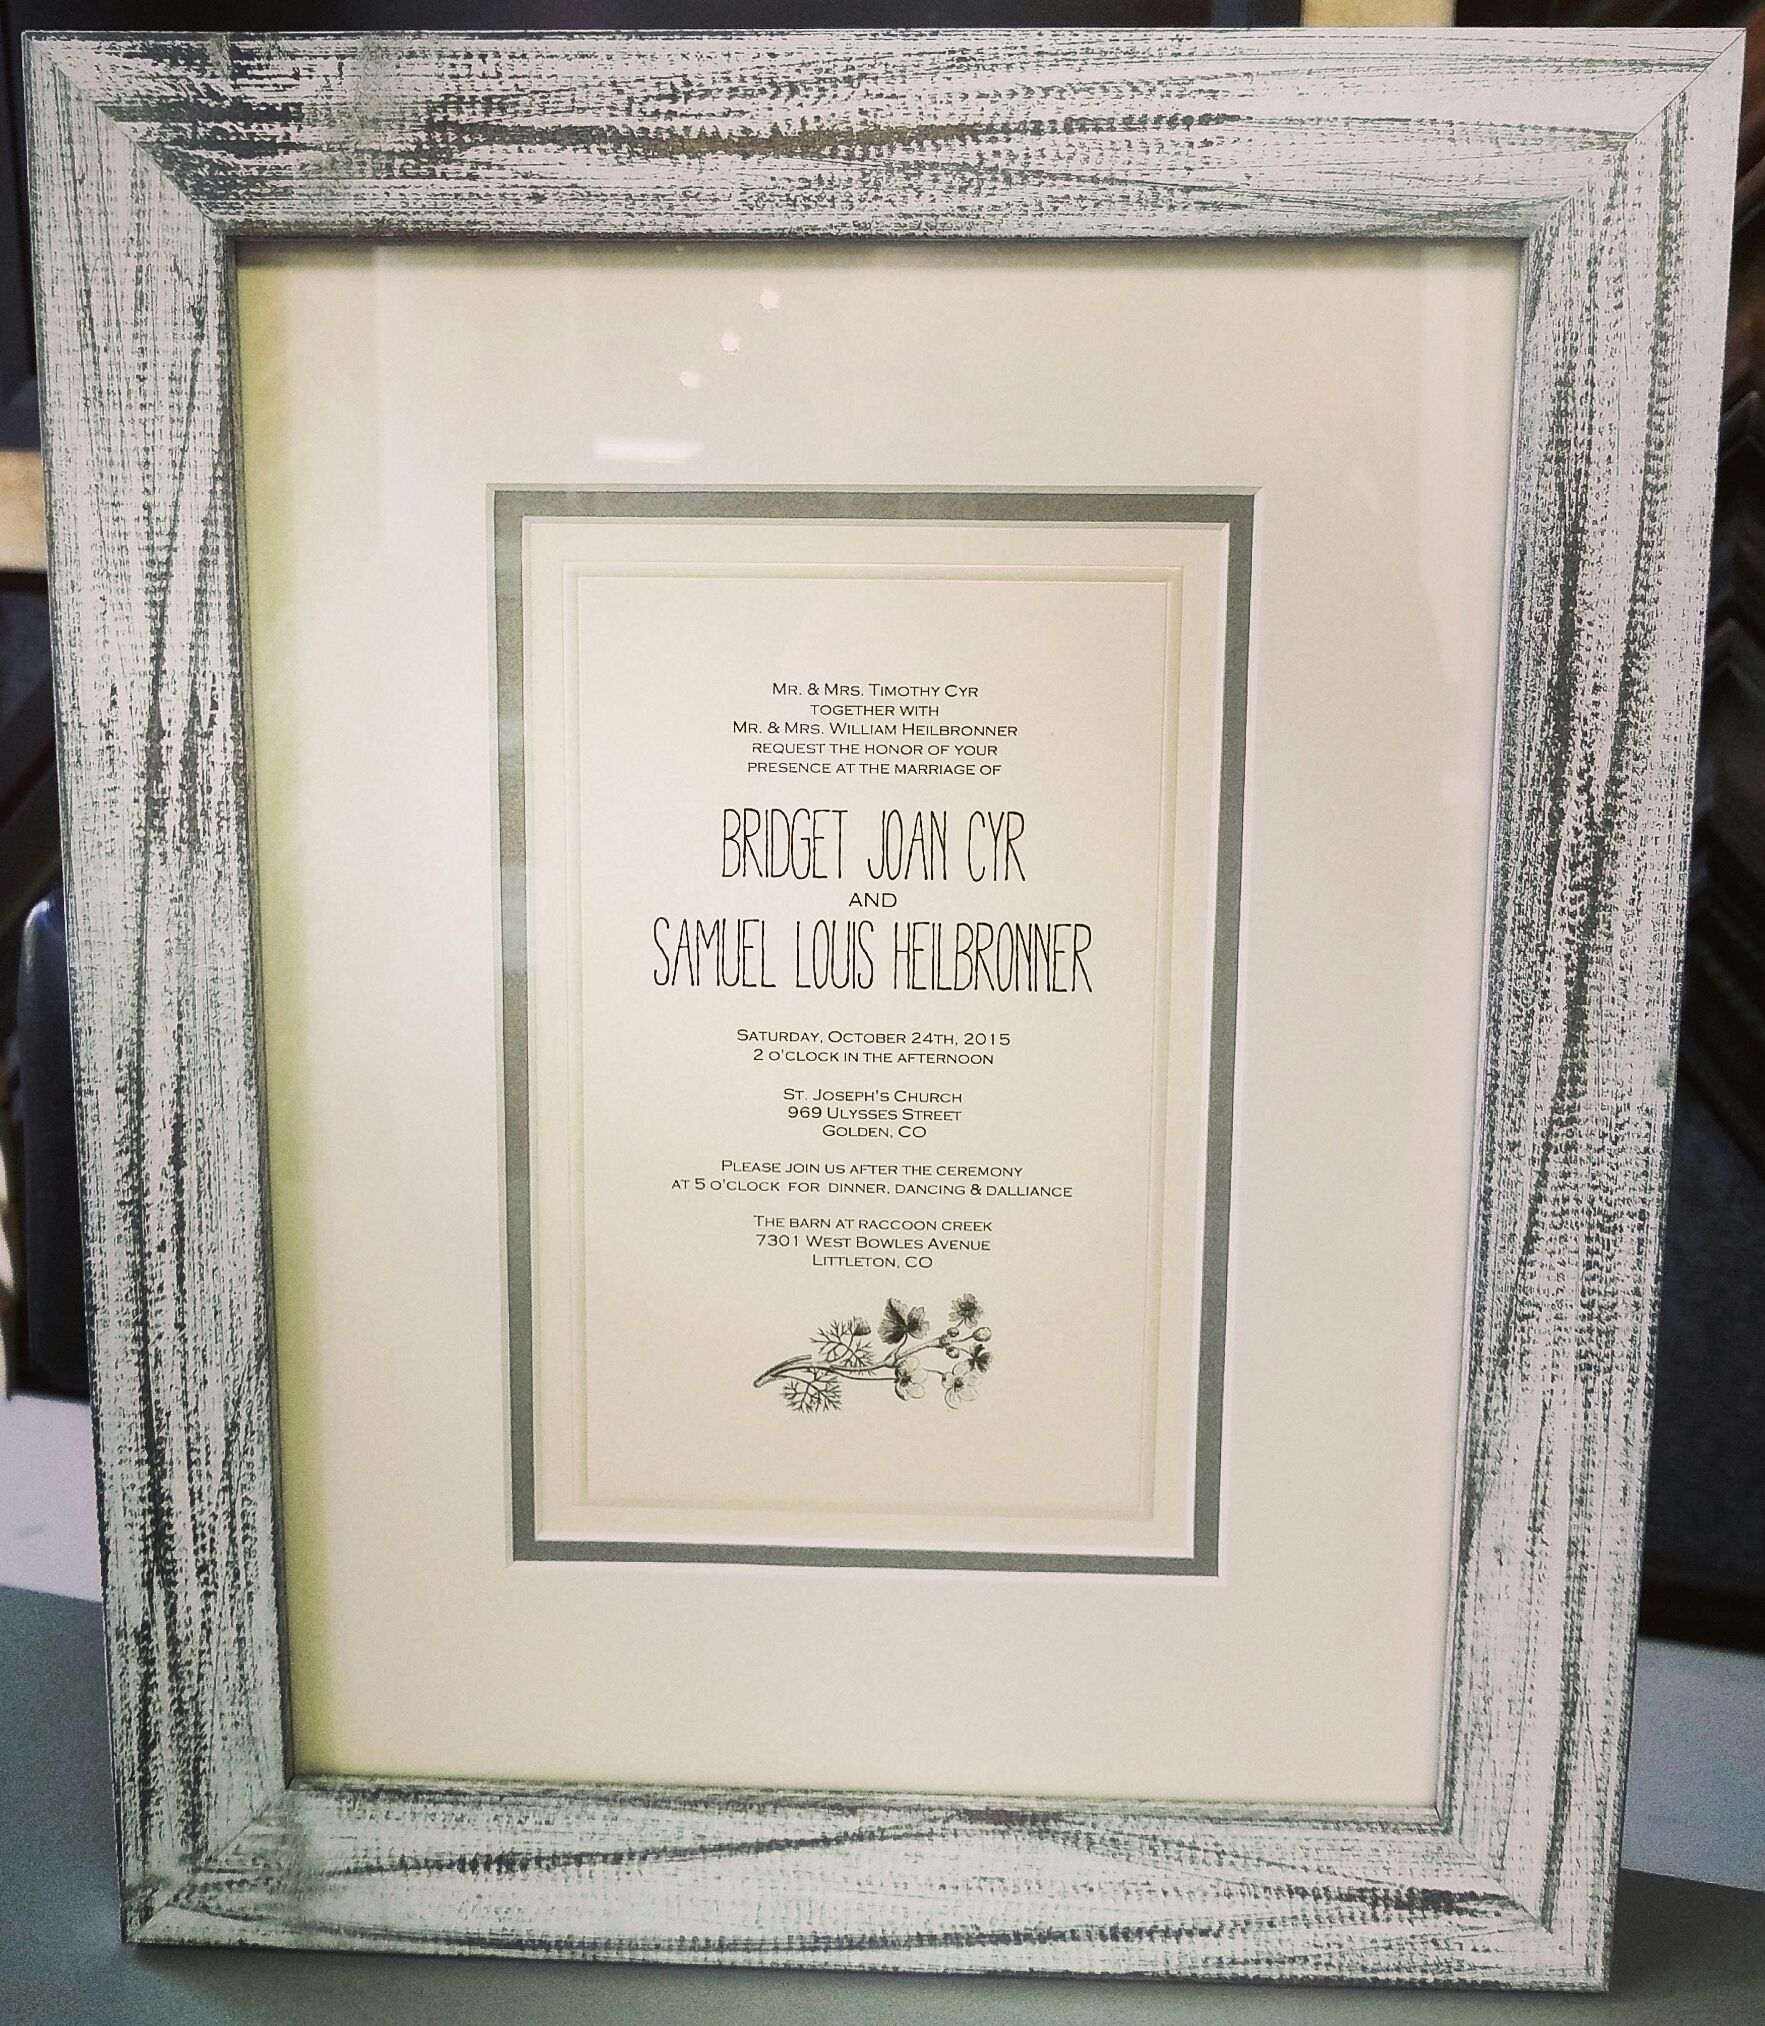 Custom framed wedding invitations make great gifts for the bride and ...